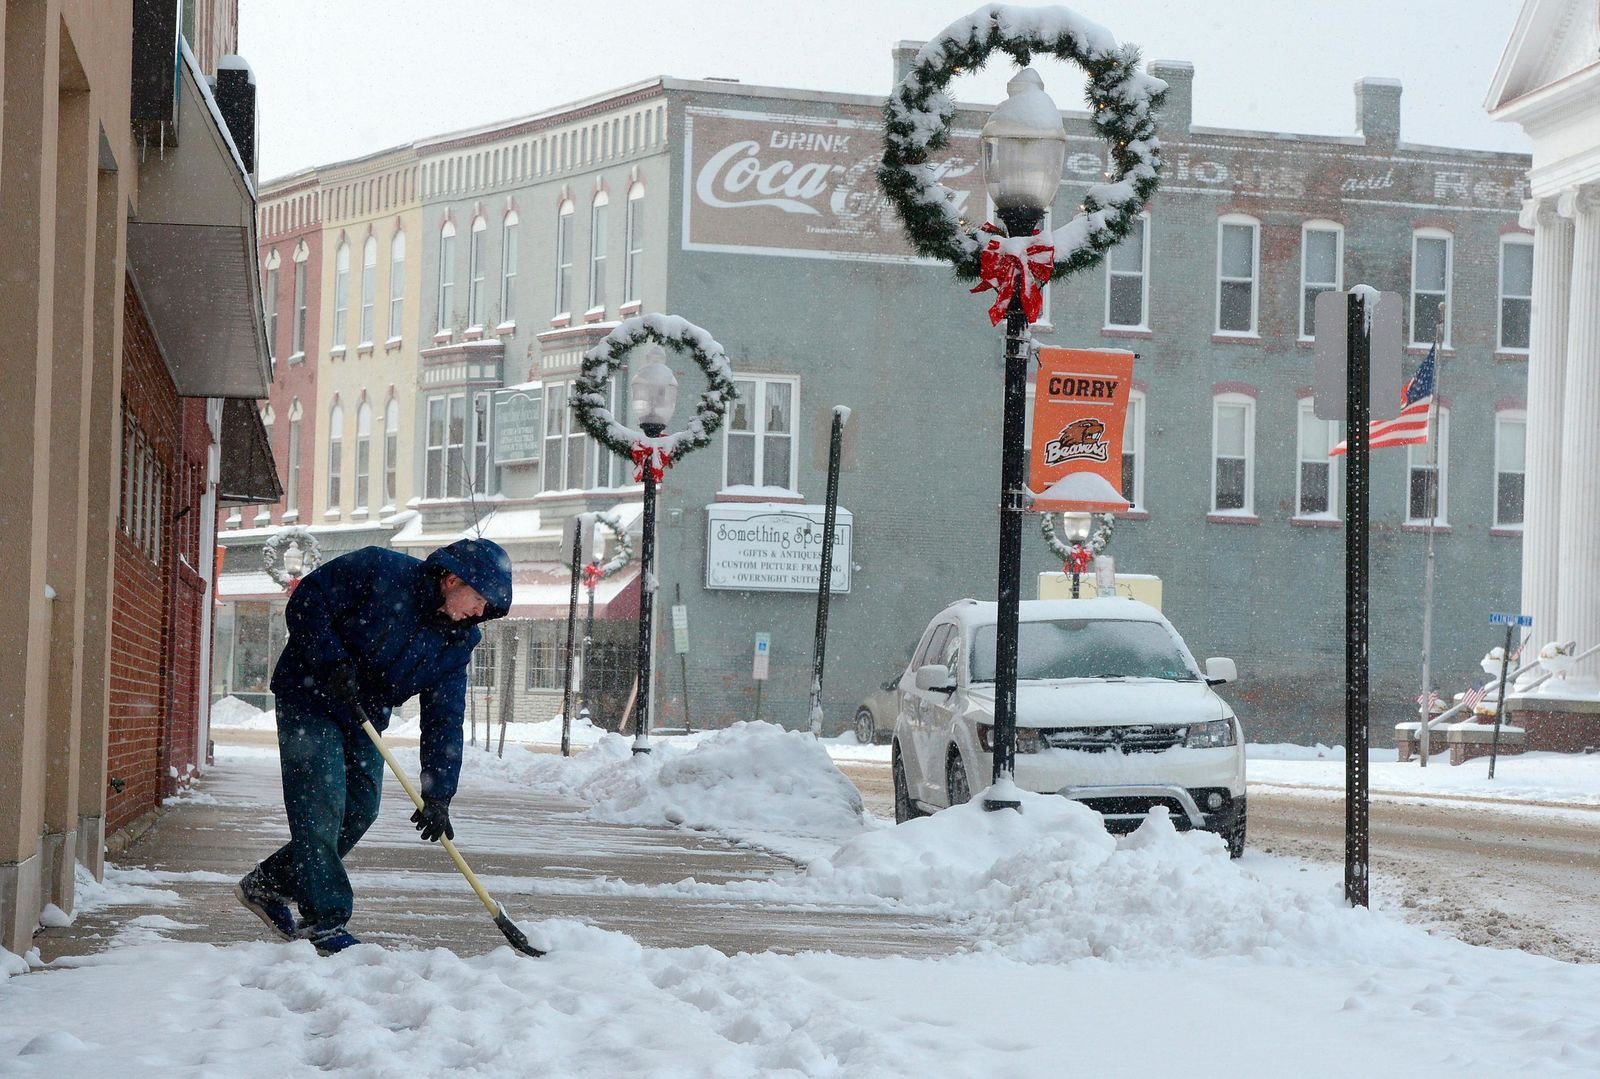 Ben Barney shovels the sidewalk on North Center Street in downtown Corry, Pennsylvania on Tuesday, Nov. 12, 2019. Erie and Crawford counties were under a winter storm warning from the National Weather Service in Cleveland. (Jack Hanrahan/Erie Times-News via AP)